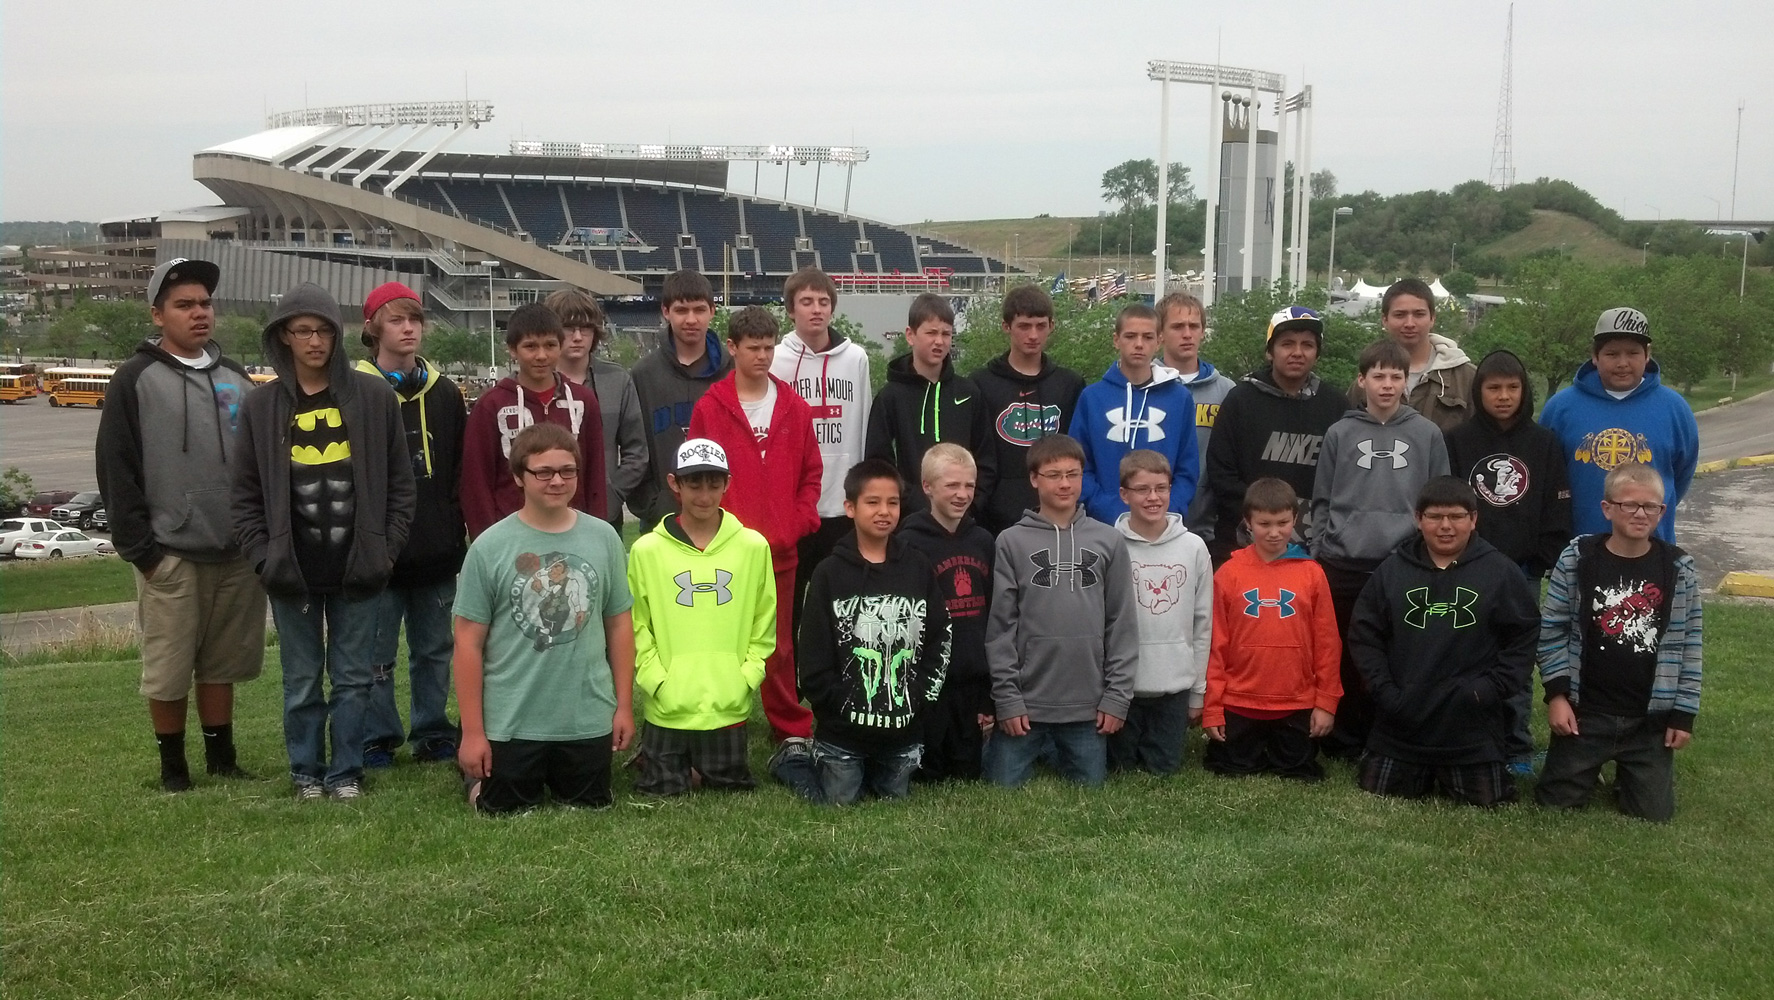 The Explorers took their annual trip to see a baseball game in May 2014.